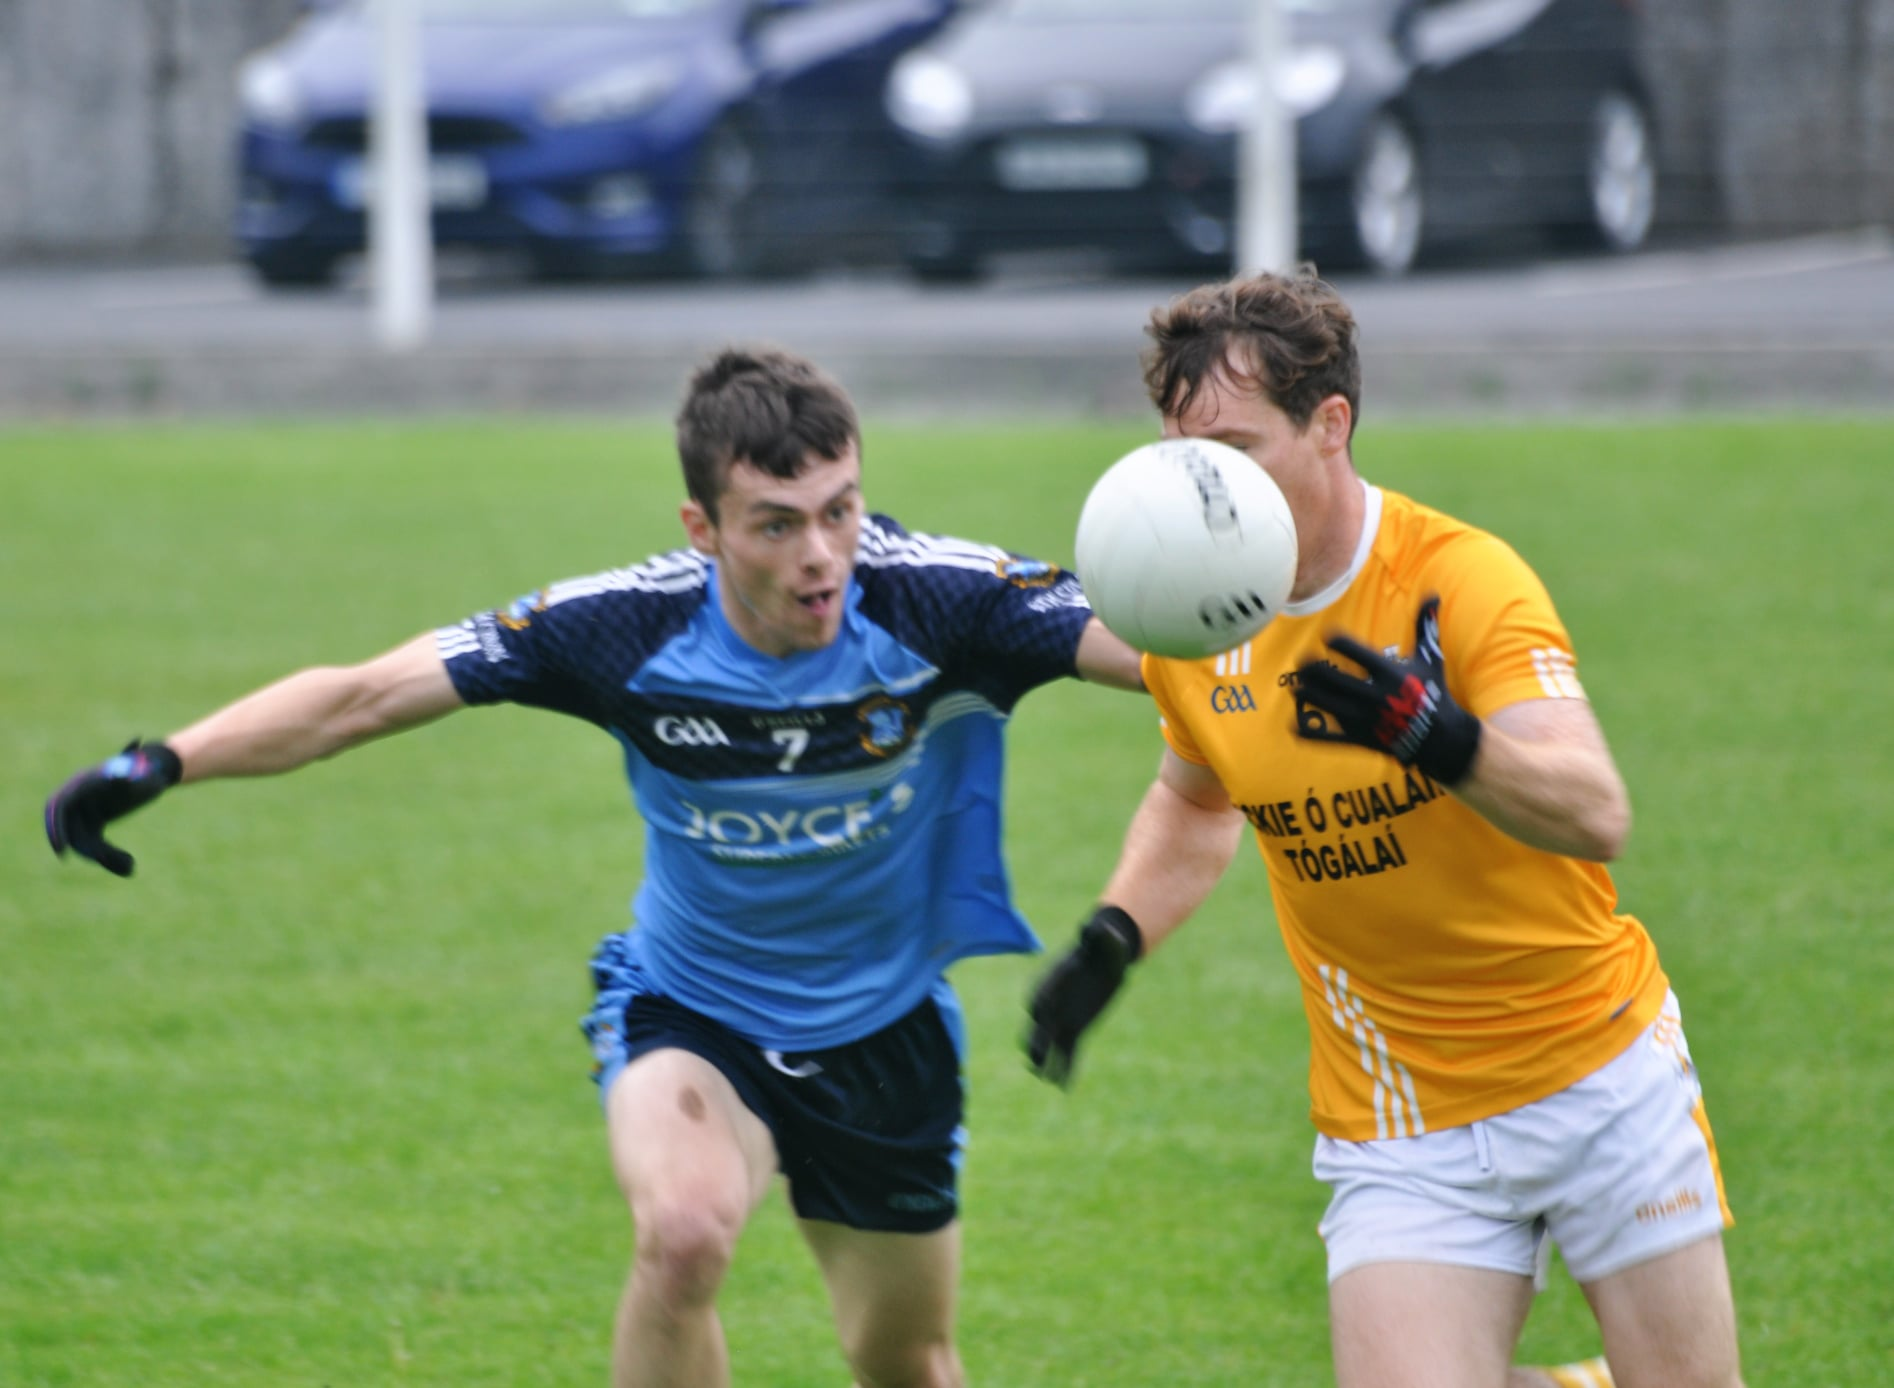 Full Video Coverage of our Intermediate Championship Round 2 Game vs Cárna/Cashel